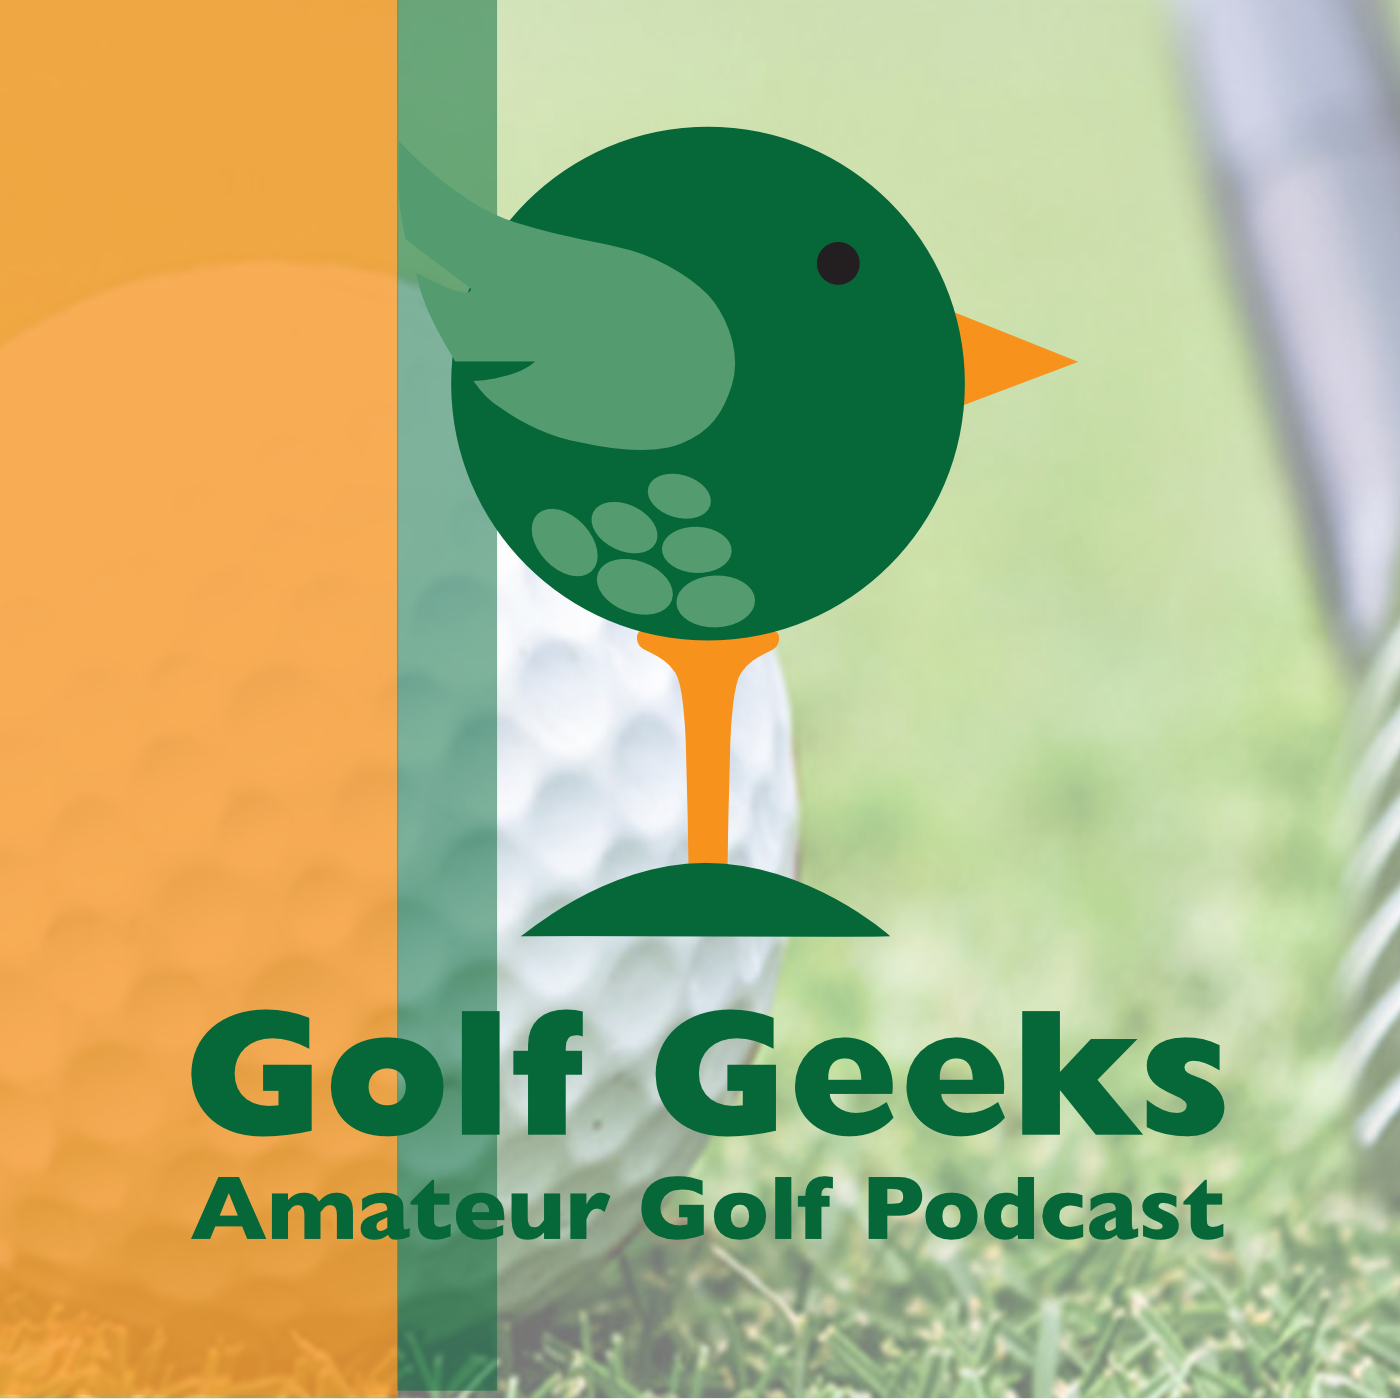 Golf Geeks Amateur Golf Podcast Episode 2